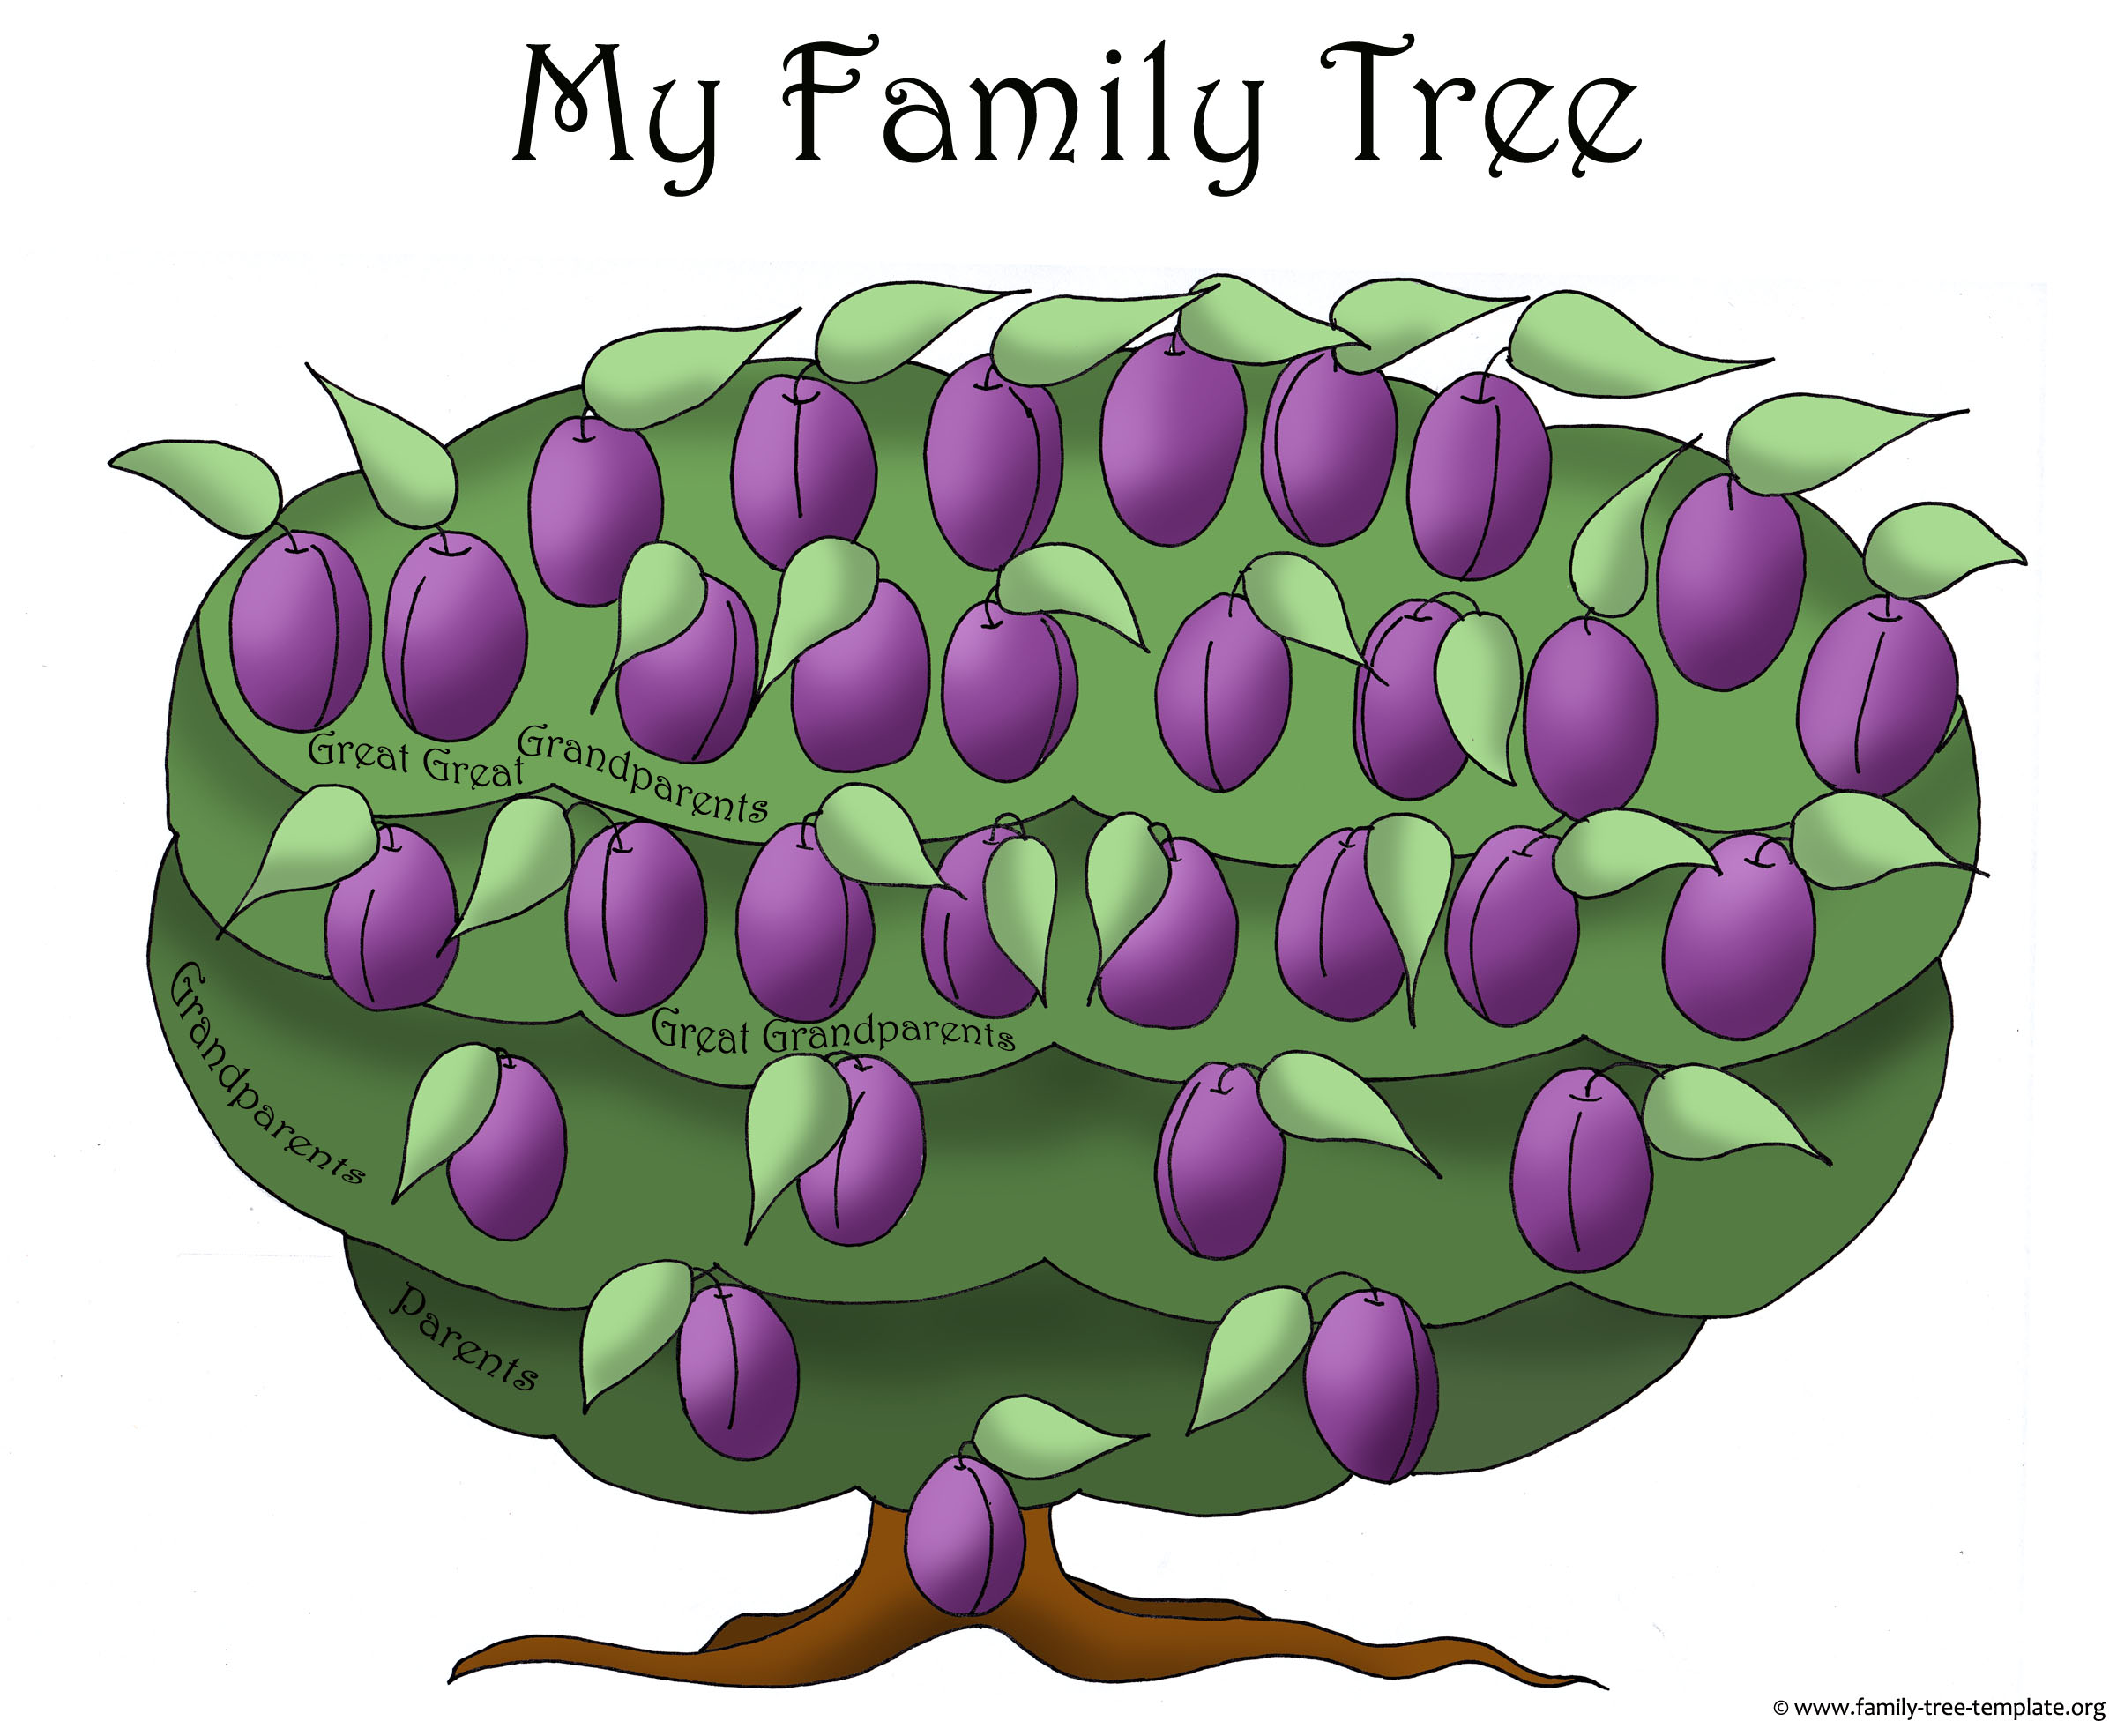 Big blank family tree with plums for family members. Ideal for printing.